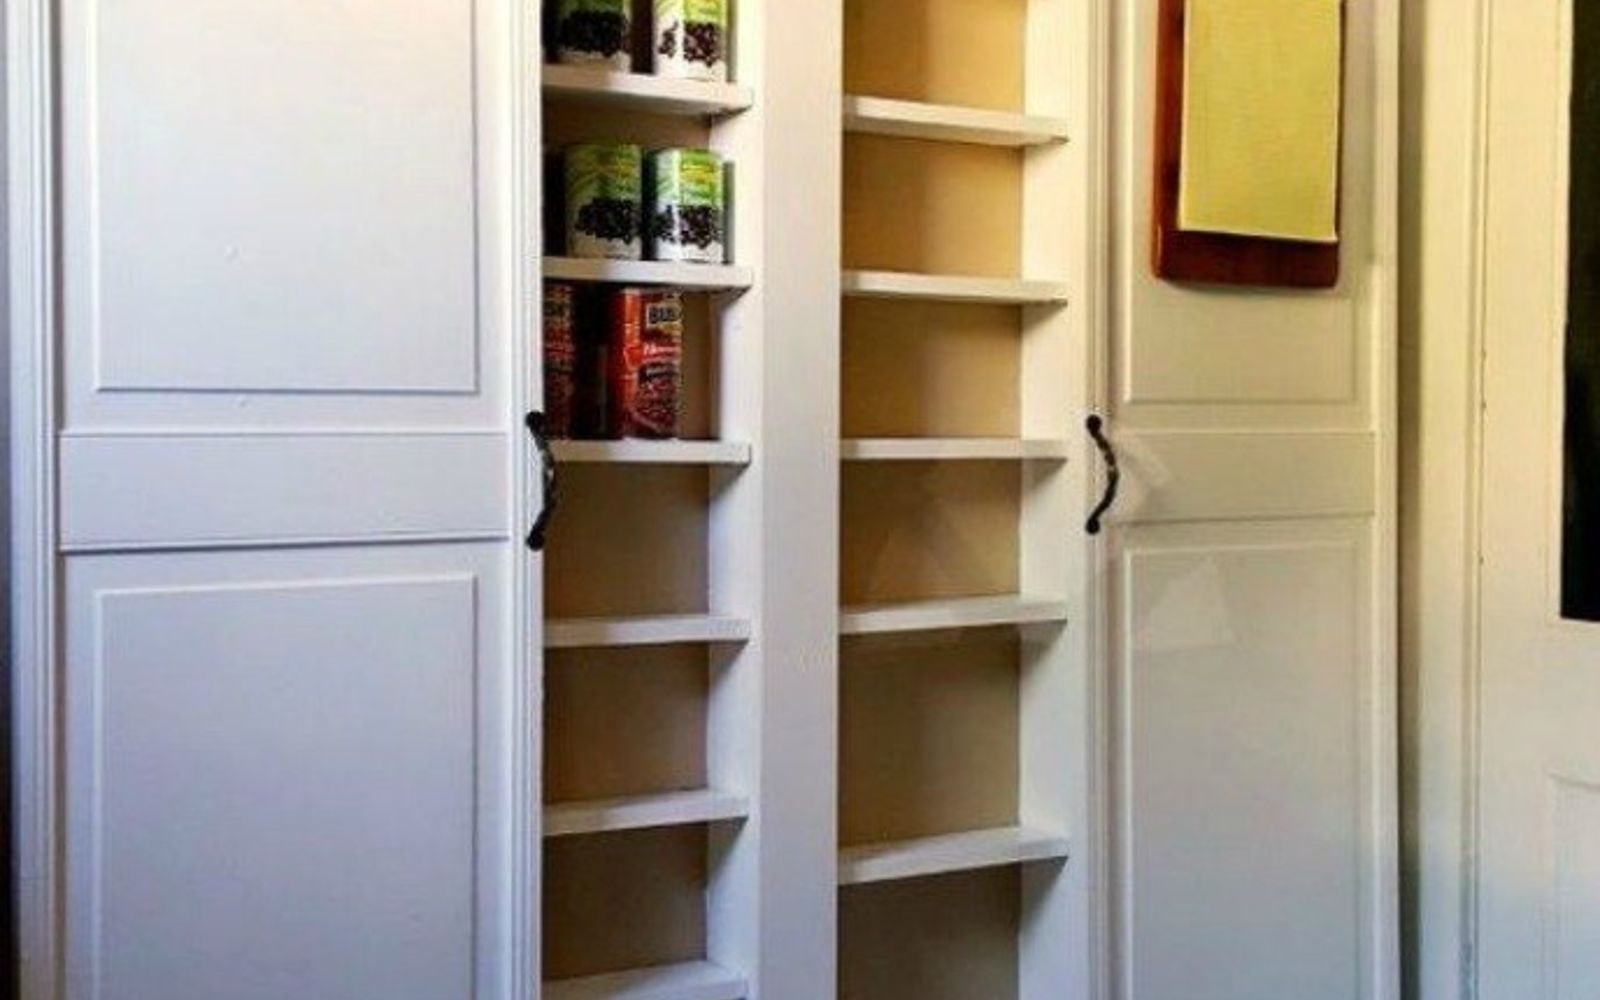 s add more pantry space with these brilliant hacks, closet, Build your own small pantry shelf